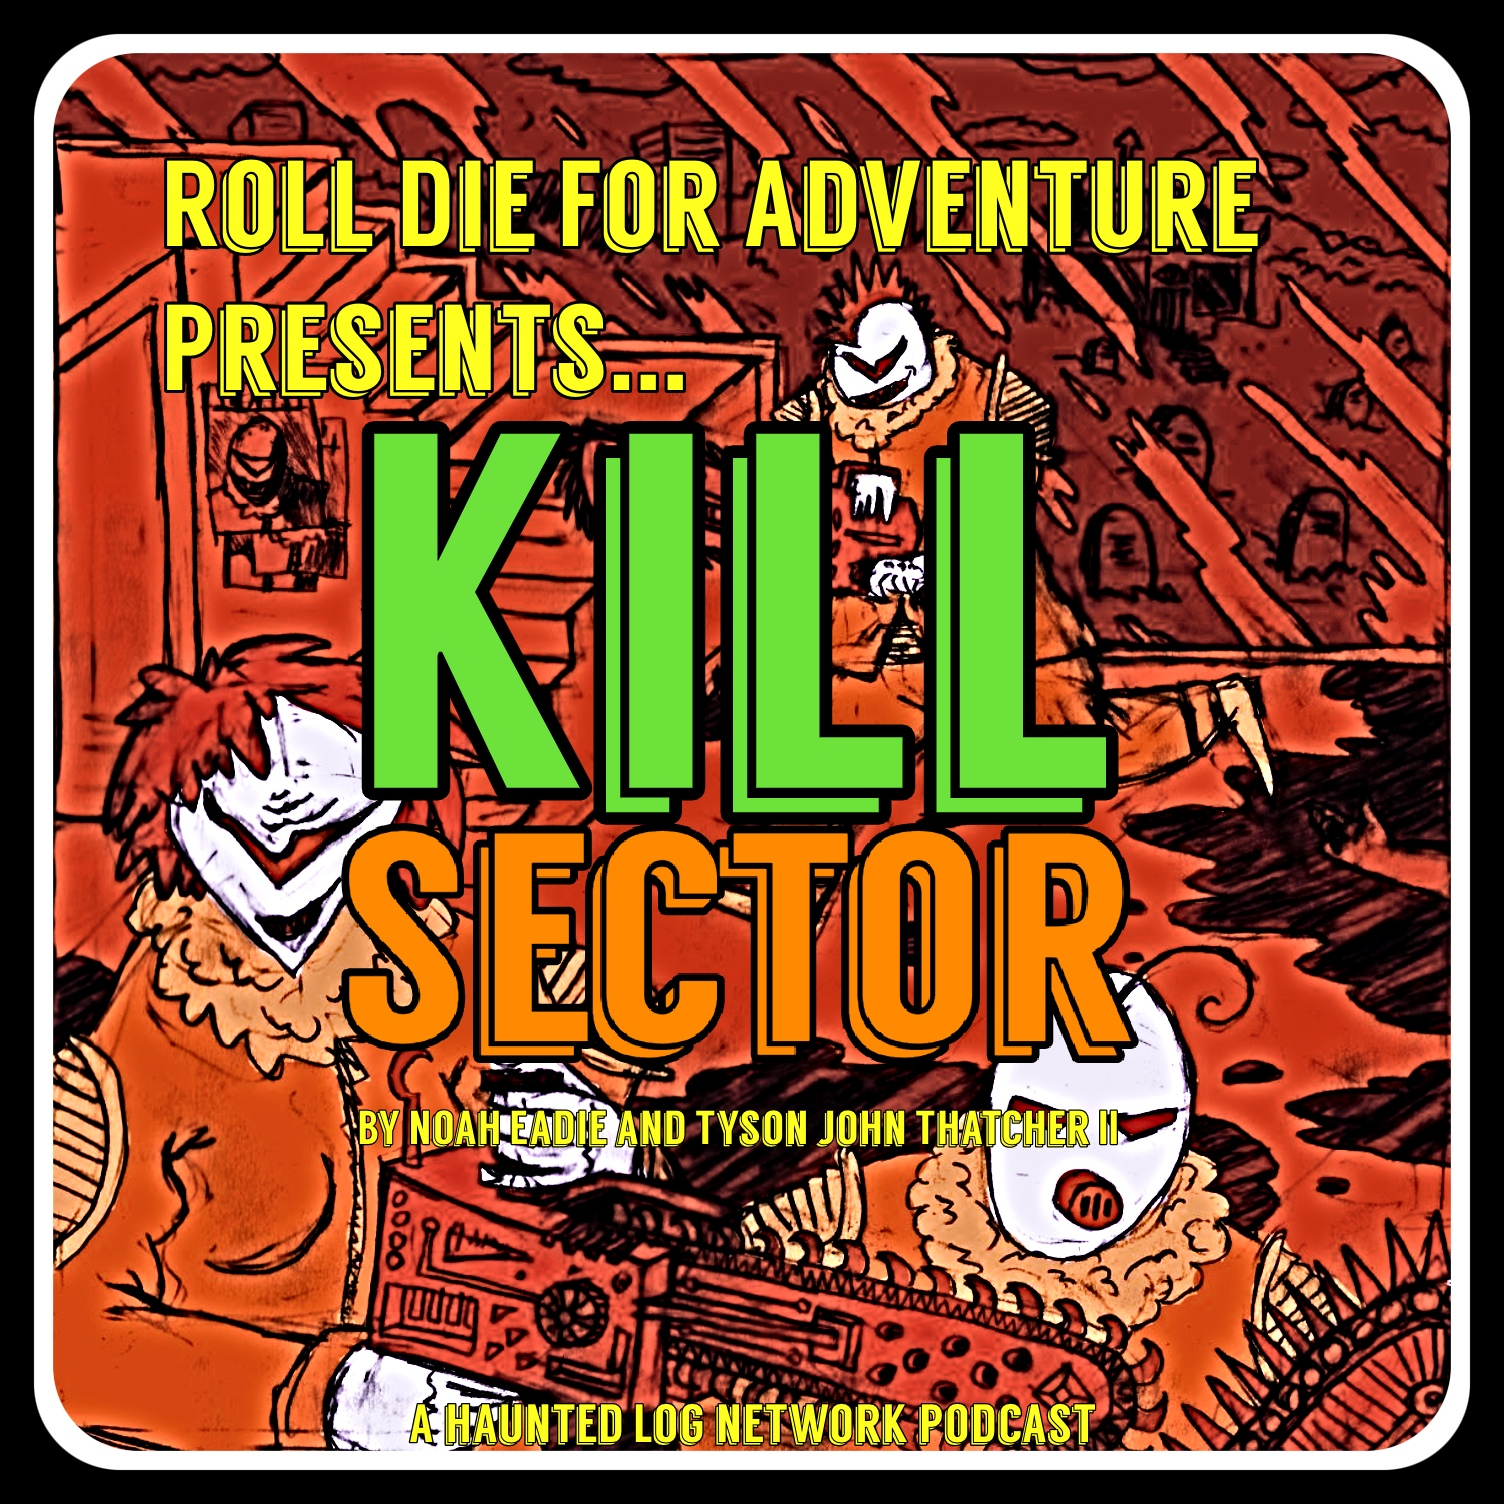 A Roll Die For Adventure Special Kill Sector : The Dome With Tyson John Thatcher The Second